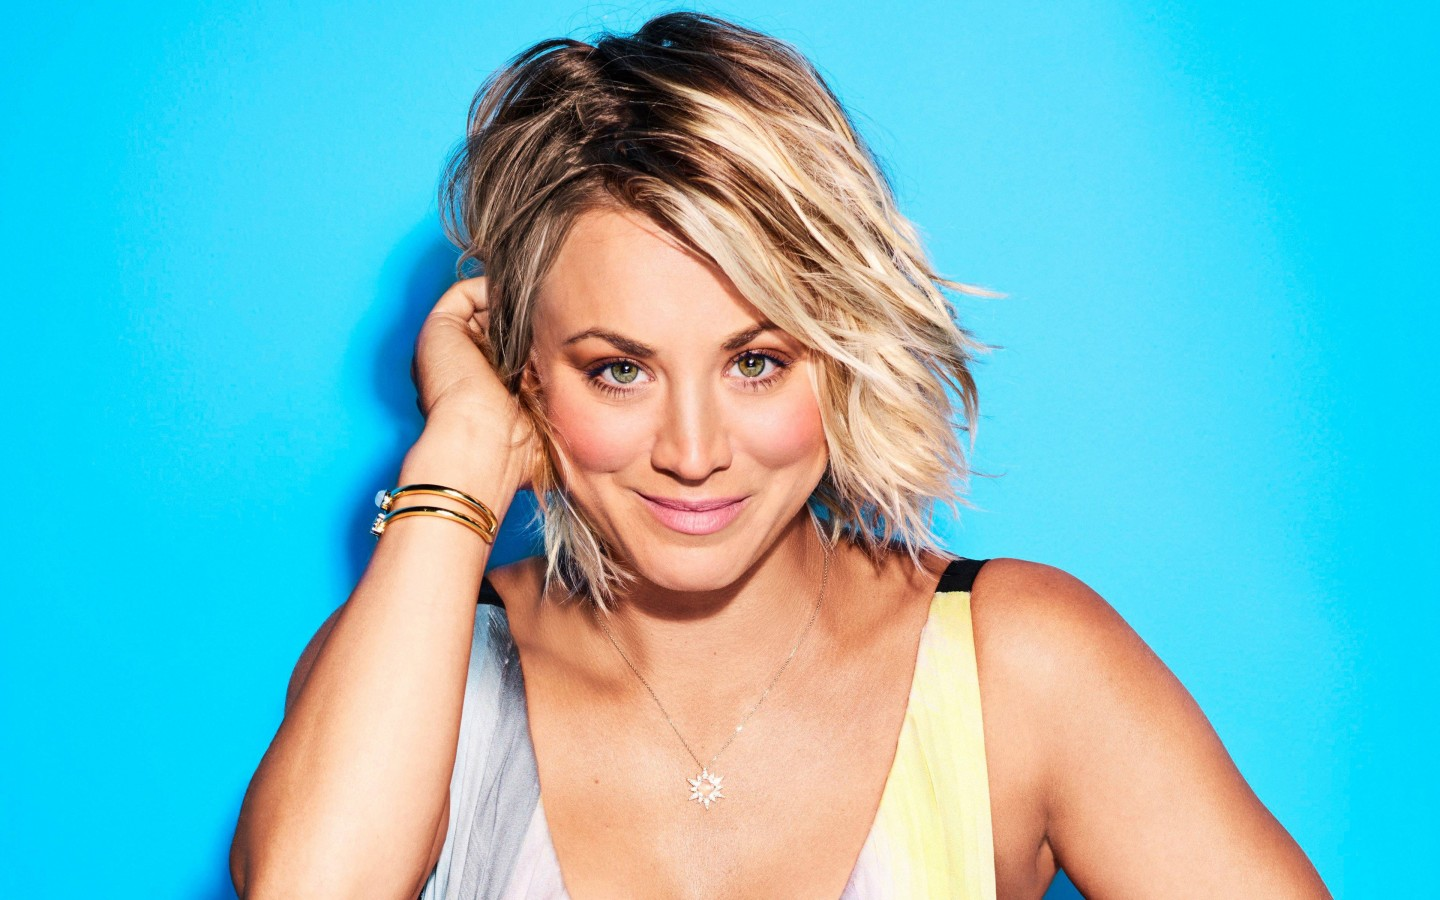 Tattoo Girl Hd Wallpaper Download Kaley Cuoco 4k 2017 Wallpapers Hd Wallpapers Id 21042